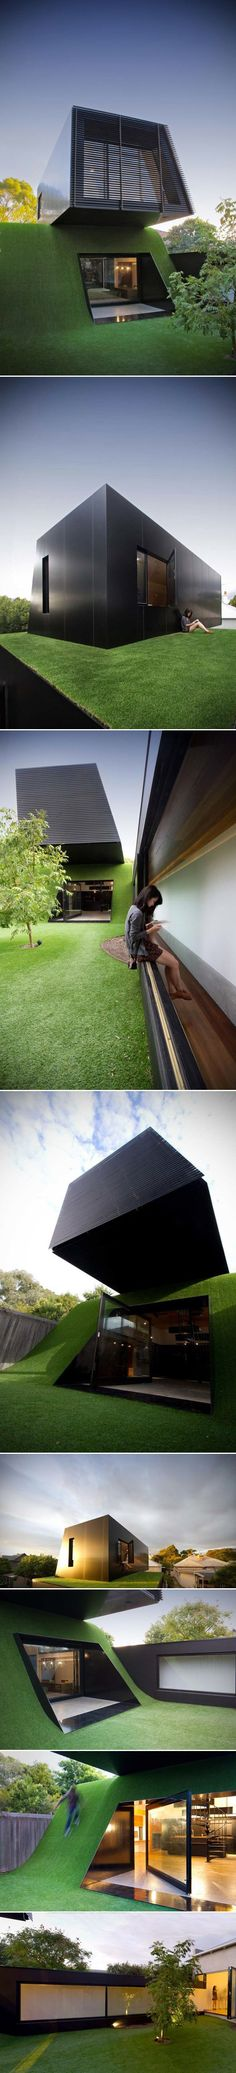 """Hill House by architect Andrew Maynard nice infographic Sublime accommodation in Melbourne by Andrew Maynard The week begins with this very big favorite architecture. This house called """"Hill House"""" is the work of architect Andrew Maynard . The main idea is to create a false hill and integrate a module to the ultra-minimalist design."""